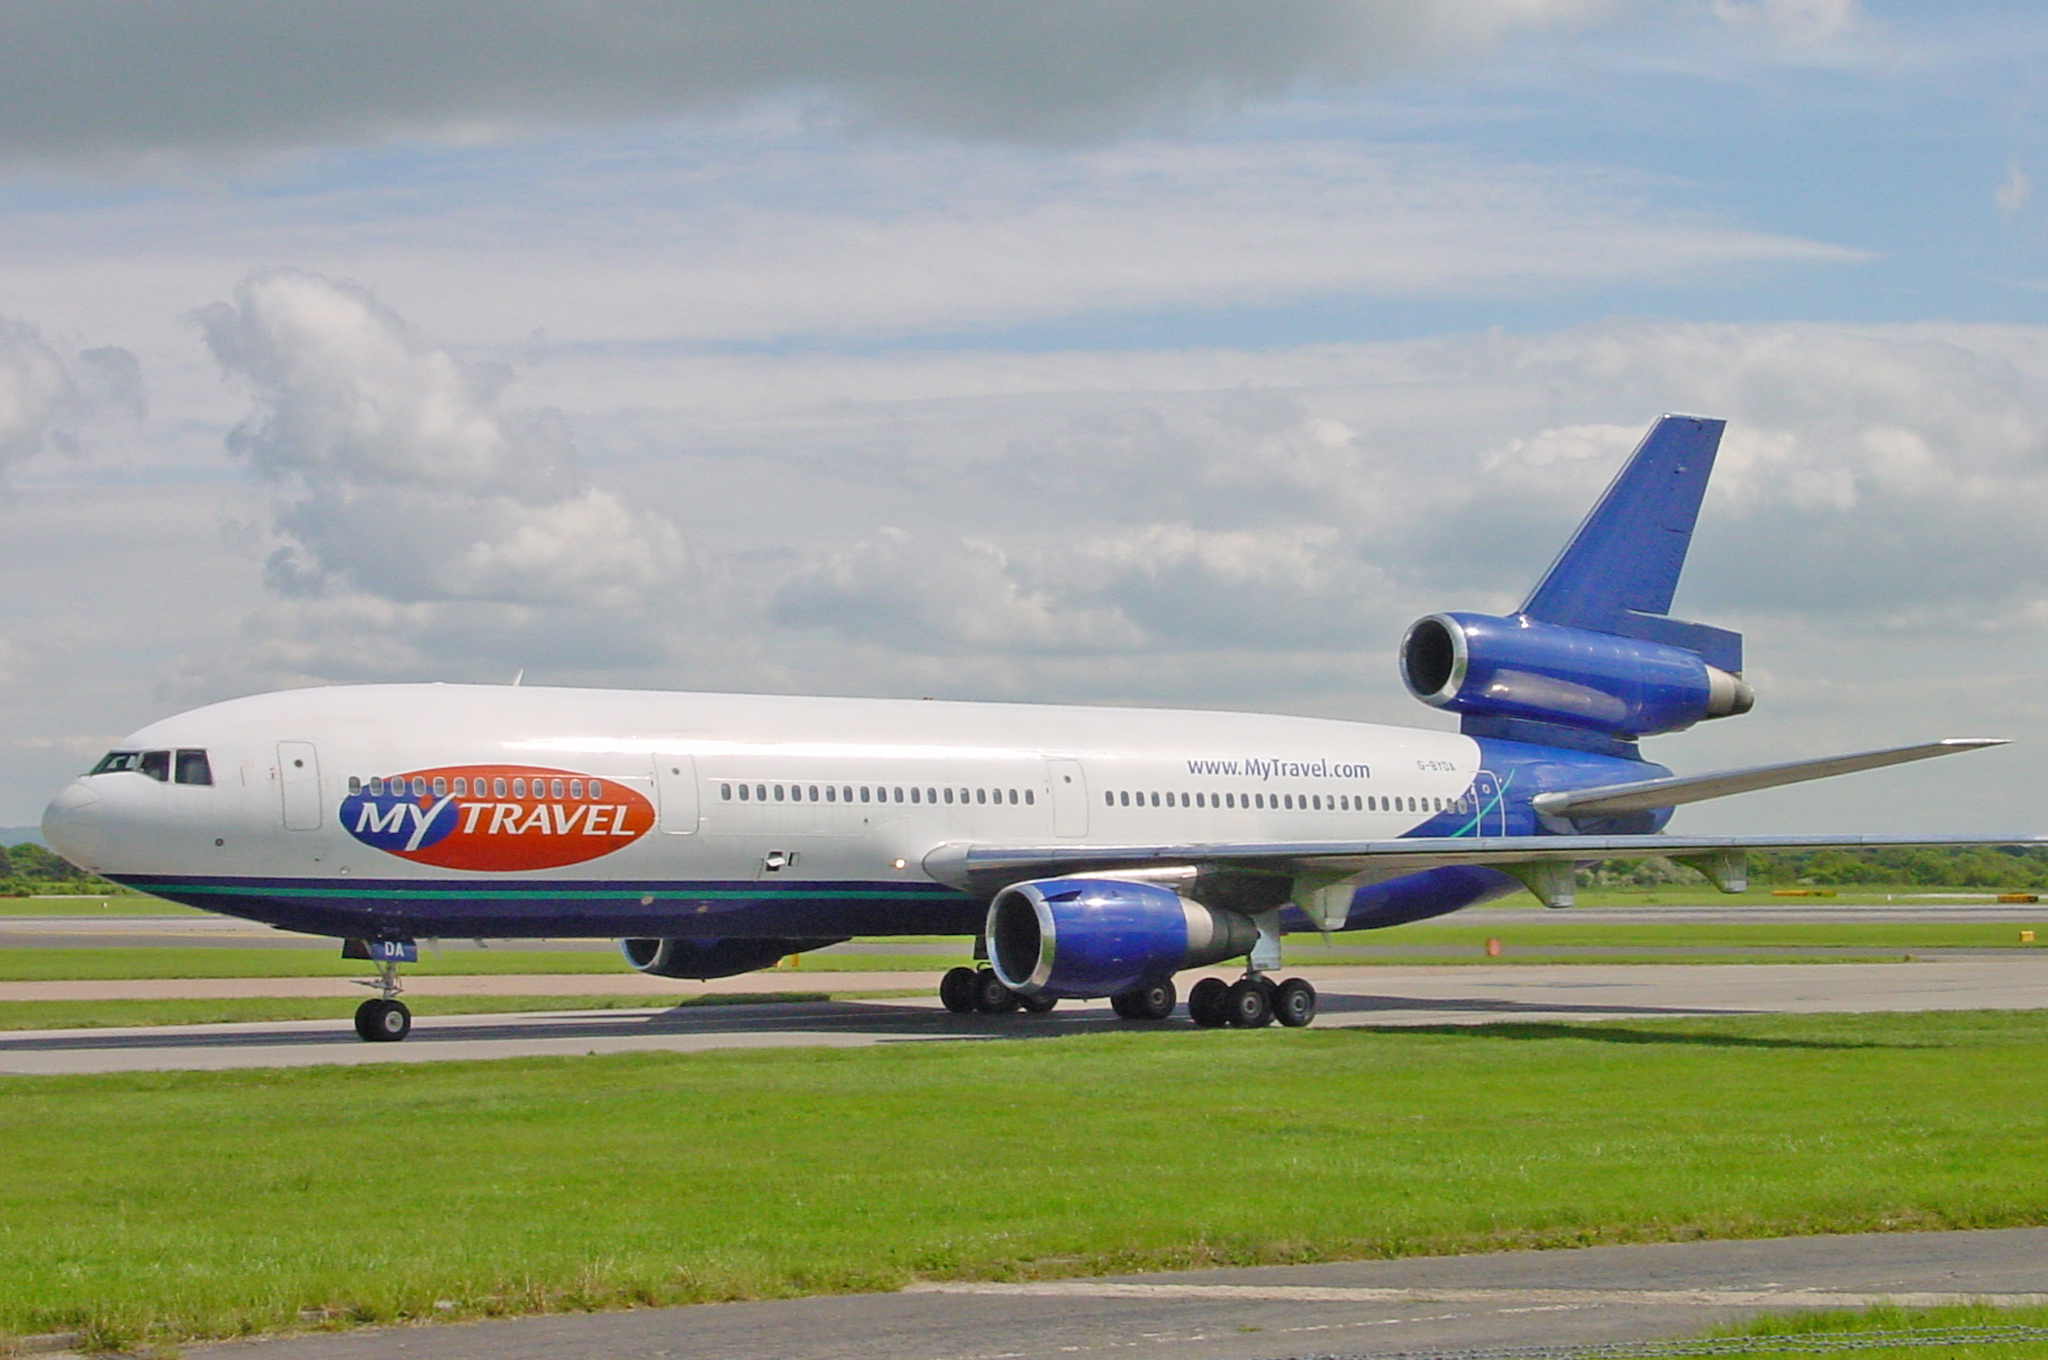 My Travel Dc10- 30 G-BYDA is seen taxiing in to MAN on 20th May 2004. This particular Dc10 was certainly well travelled having started life with Singapore Airlines back in 1978 as 9V-SDA. It then served with 9 different operators around the world - My Travel being the last. The aircraft was eventually scrapped at Kemble in June 2005. Thank you to Steve Ashworth for sharing the photo which was taken from the Aviation Viewing Park 15 years ago.